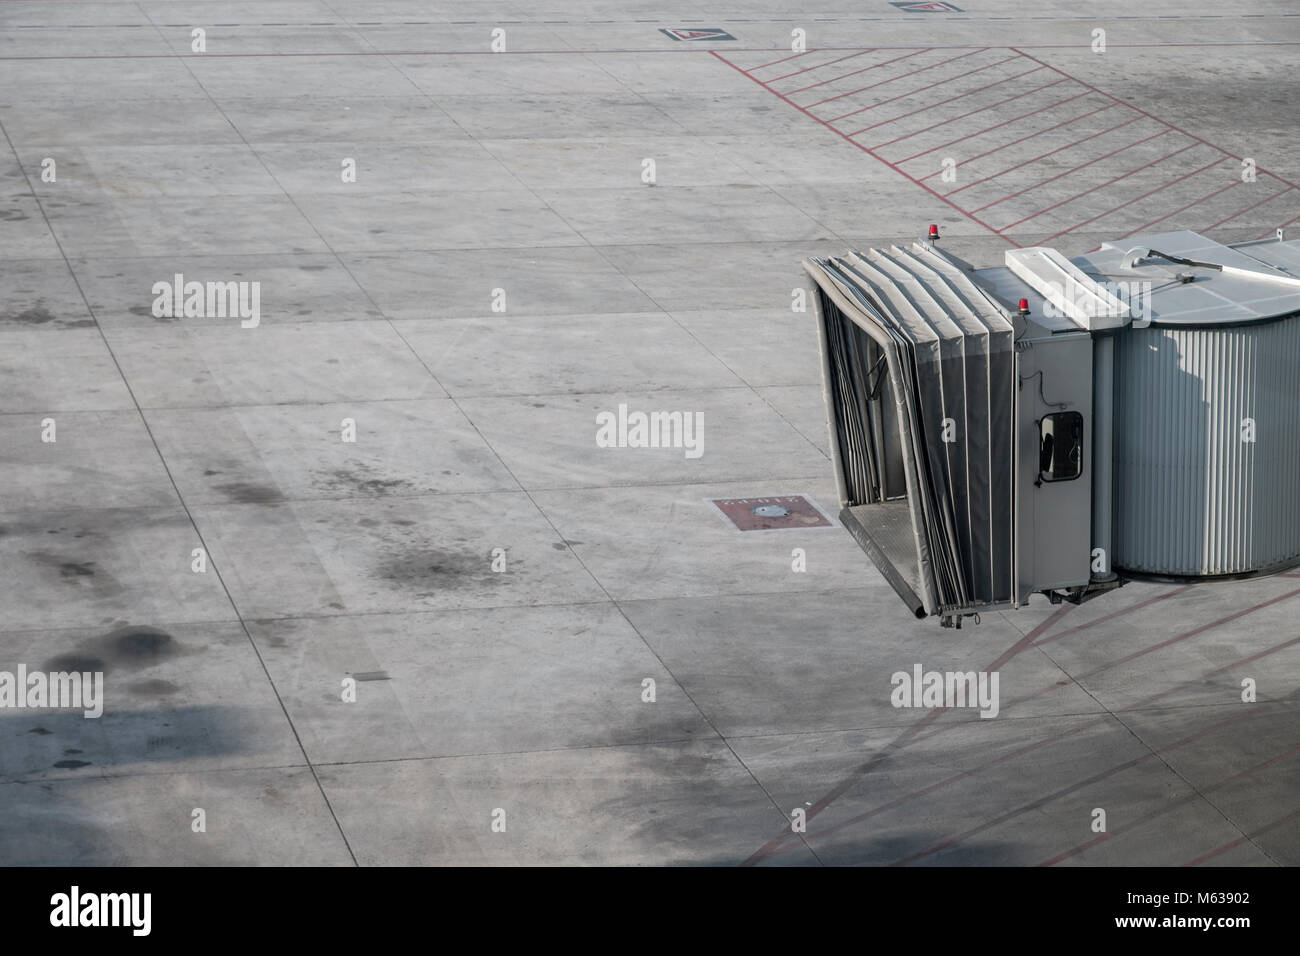 abstract of a skybridge at Barcelona airport - Stock Image